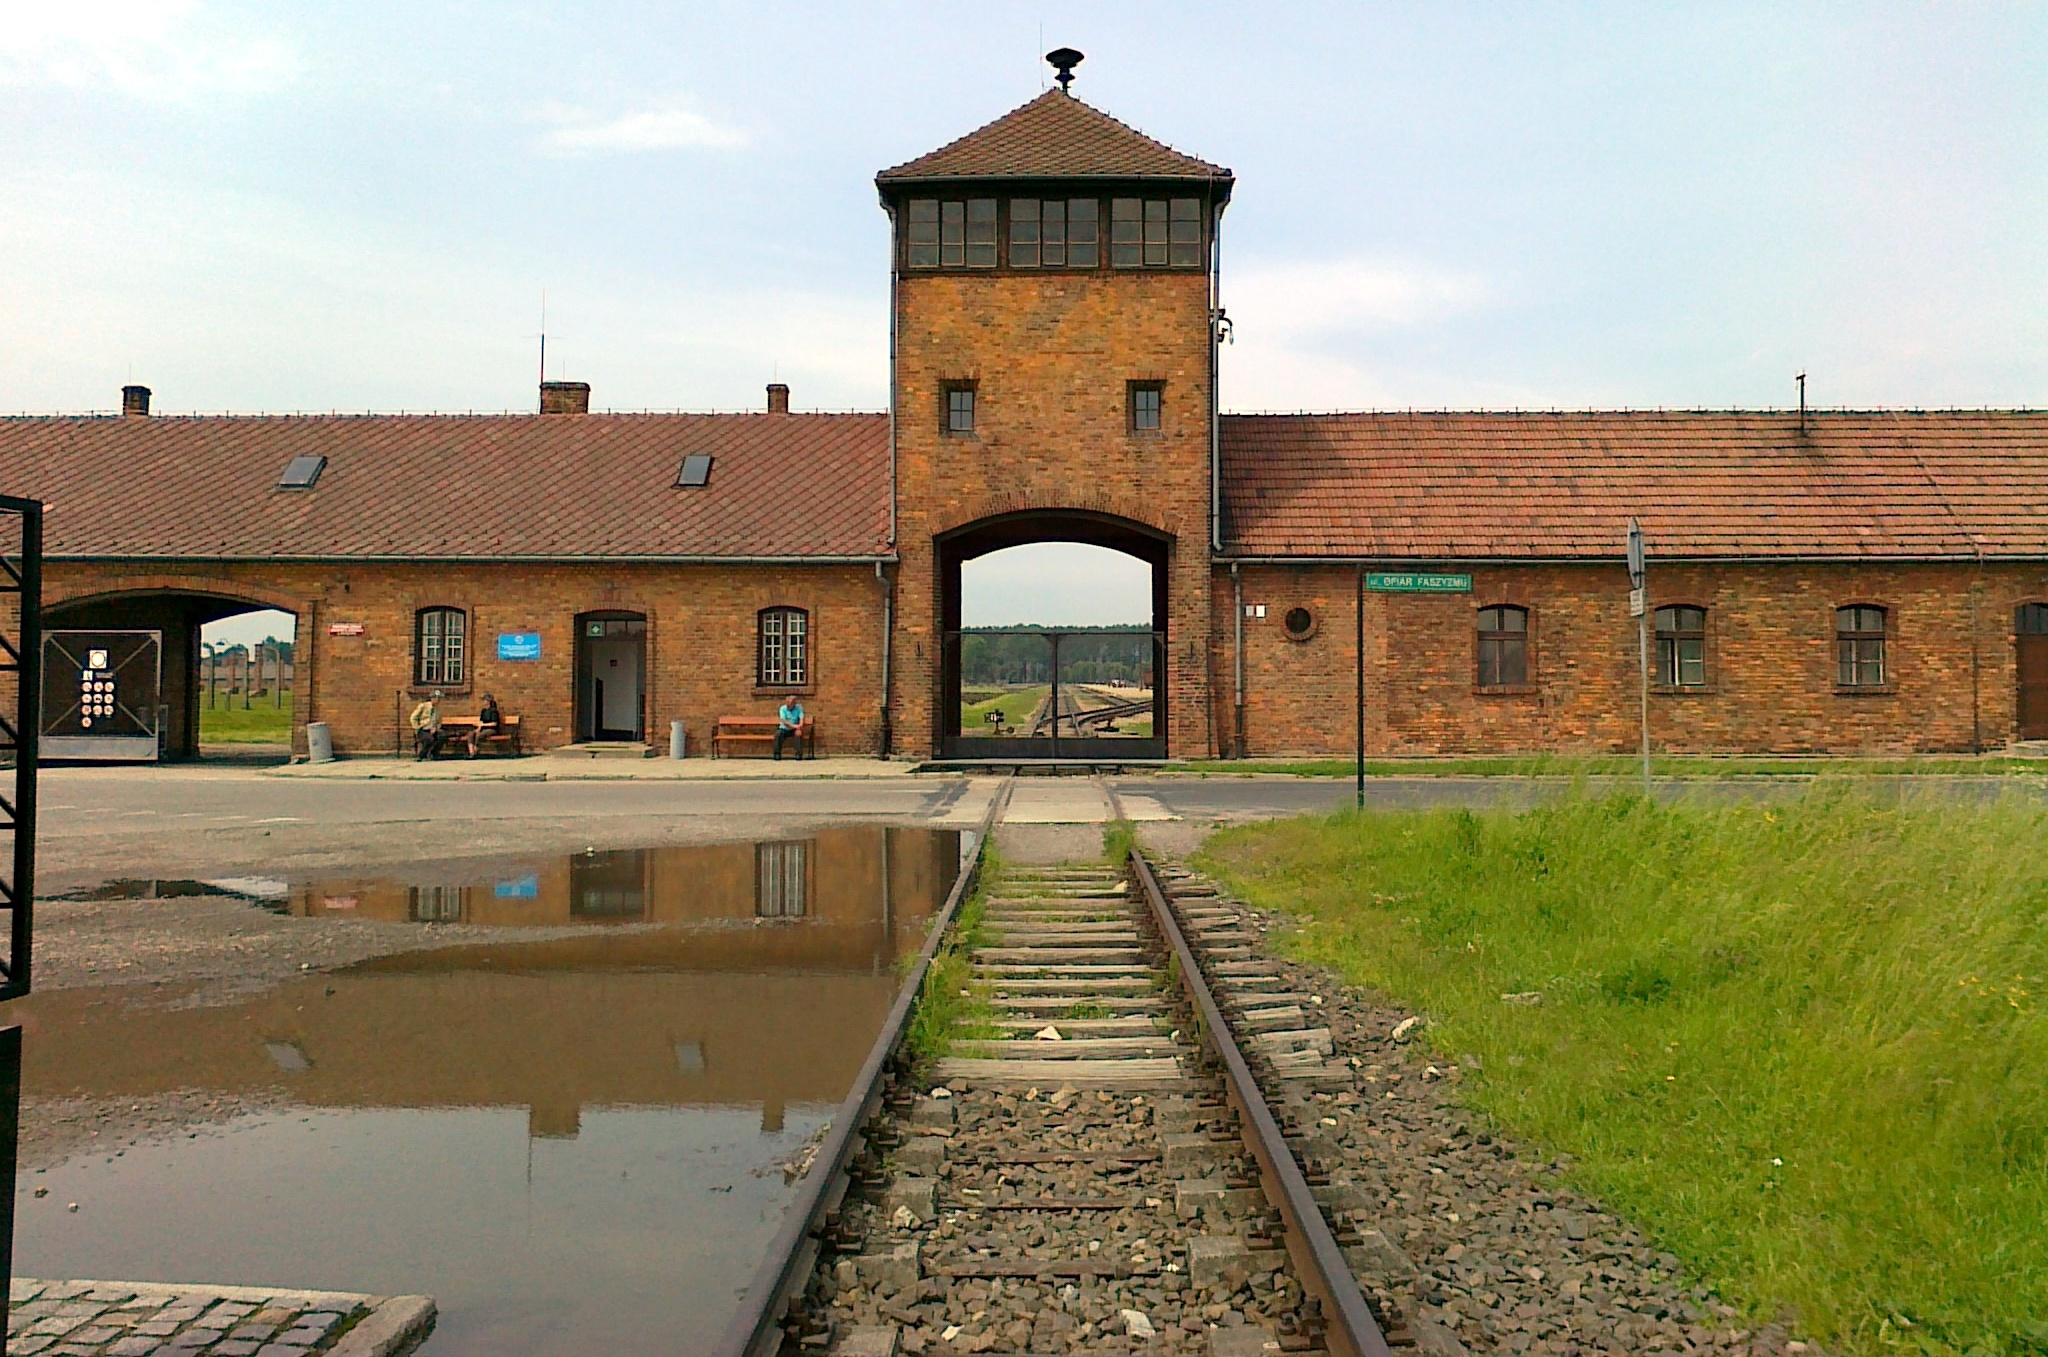 https://upload.wikimedia.org/wikipedia/commons/3/37/Birkenau_m%C3%BAzeum_-_panoramio_%28cropped%29.jpg